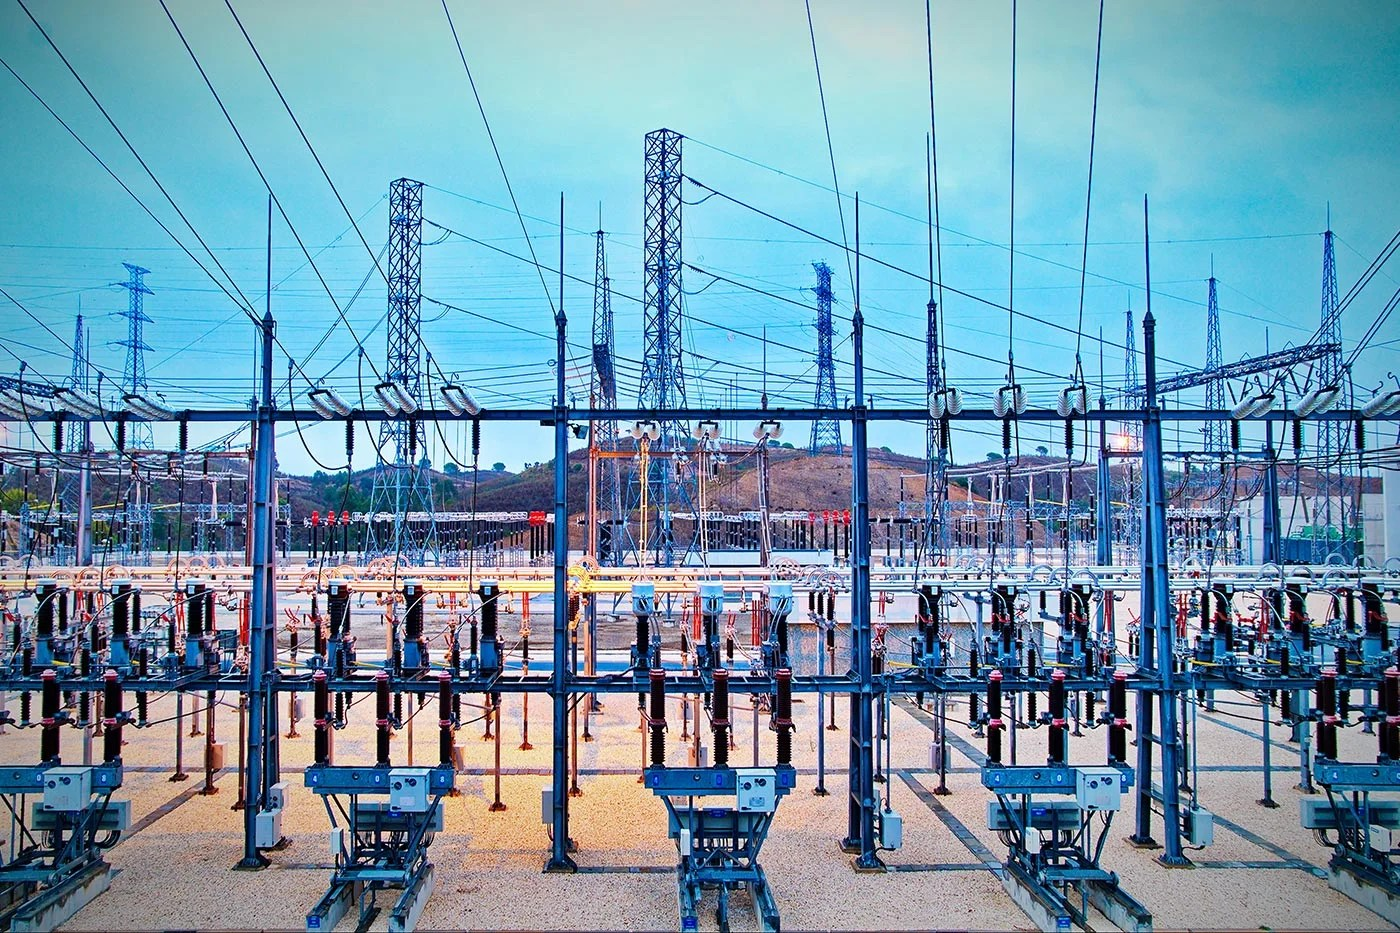 Thwarting a Power Grid Control Center Cyberattack